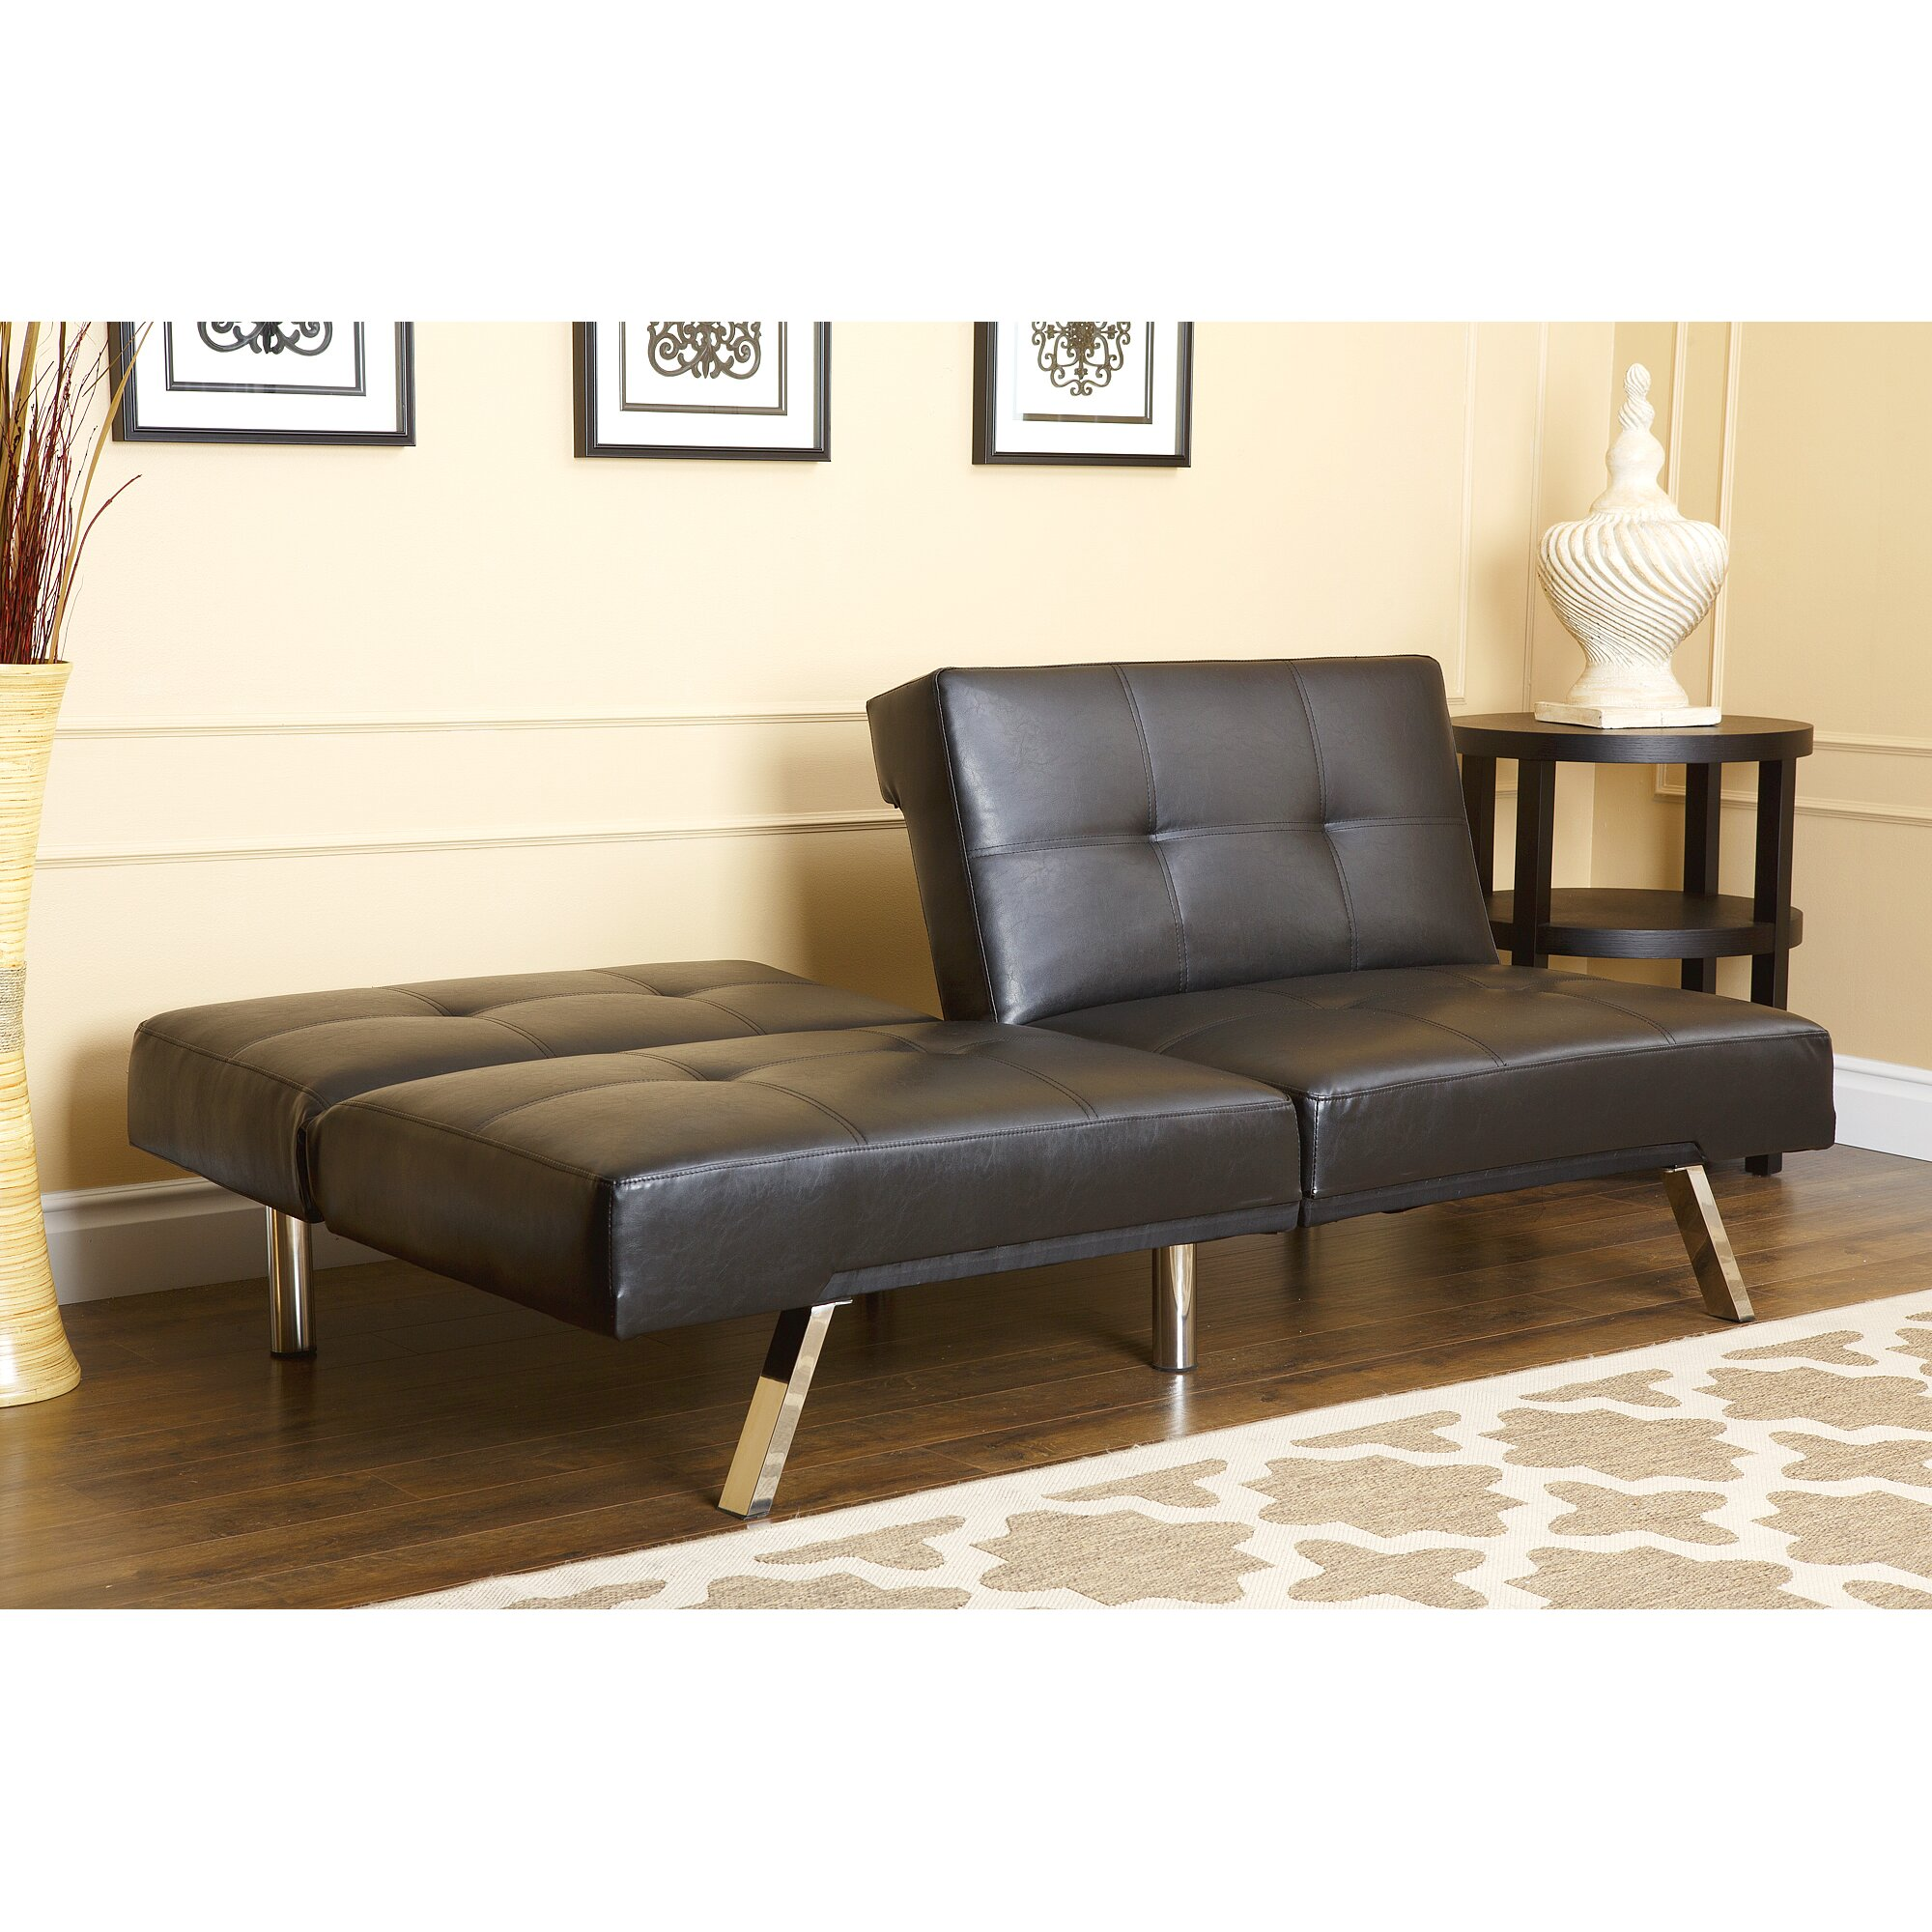 Abbyson Living Aspen Convertible Sleeper Sofa Reviews Wayfair